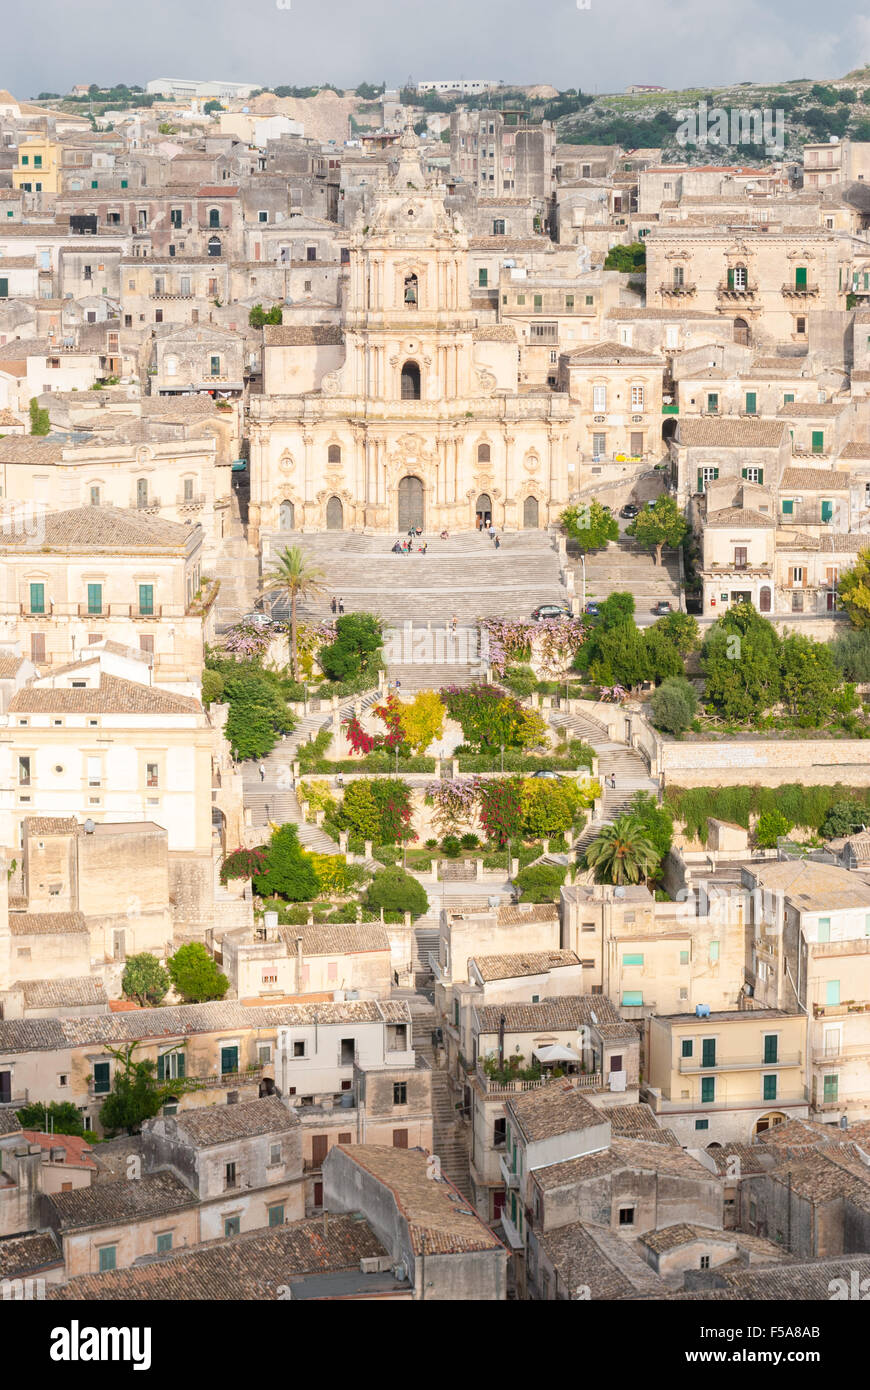 Panoramic view of Modica, with the cathedral of San Giorgio - Stock Image